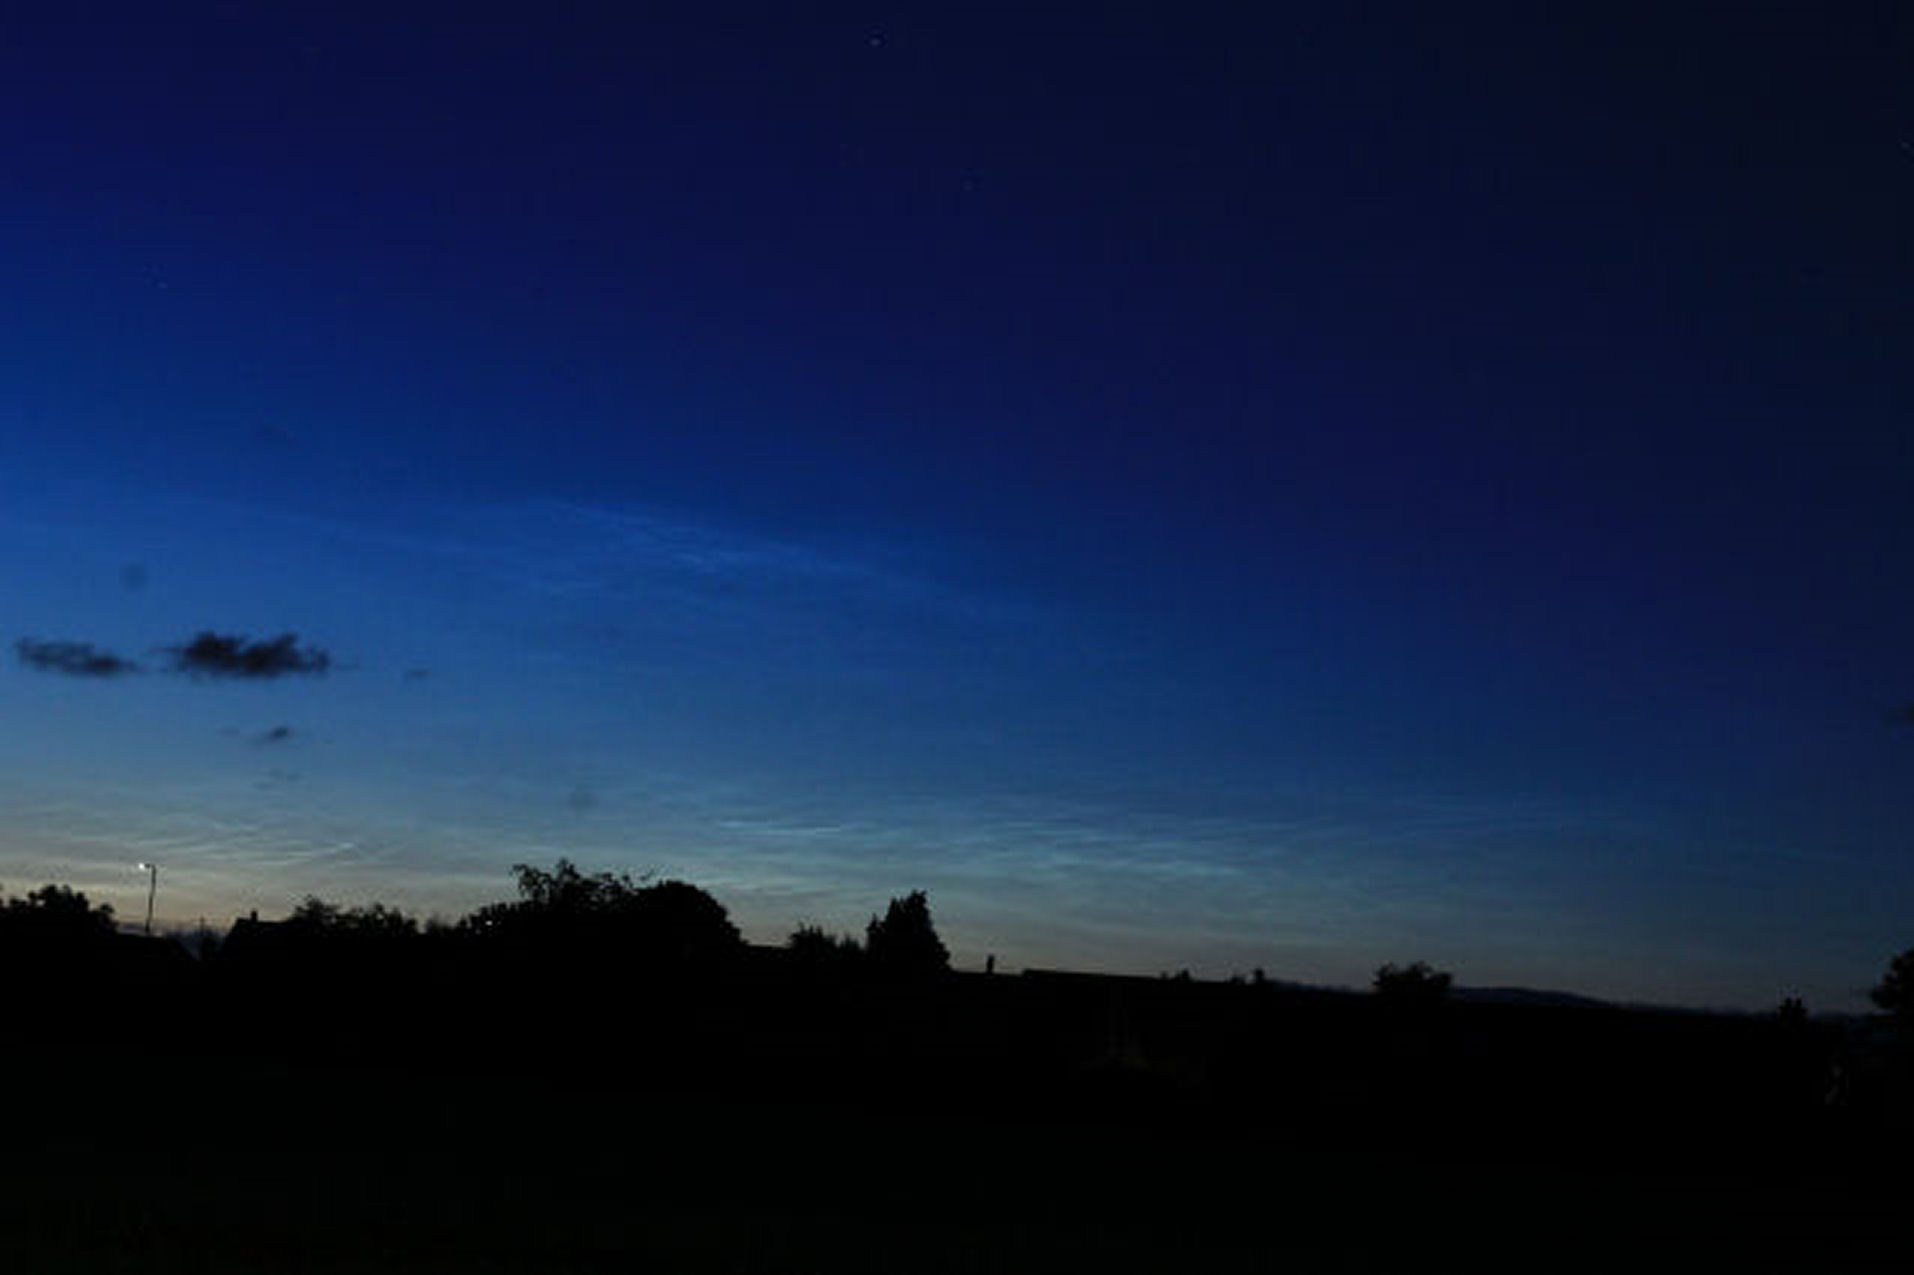 NLC By Andy Heenan  23rd June 2015. Canon EOS 600d f/11.  ISO-800  3.2 Second